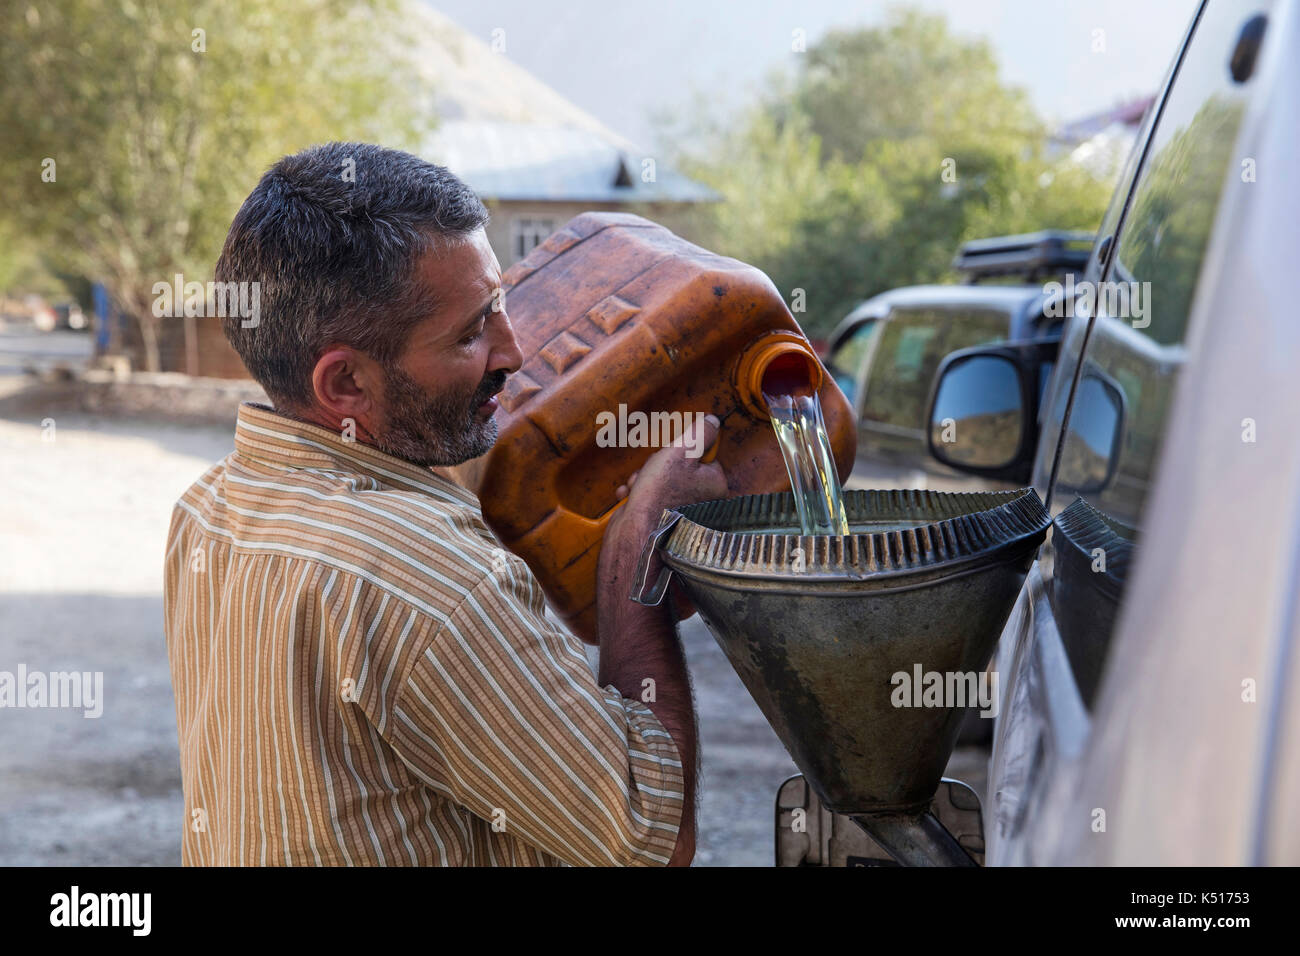 Tajik man with plastic container and funnel filling vehicle with fuel / gas along the Pamir Highway in Tajikistan - Stock Image